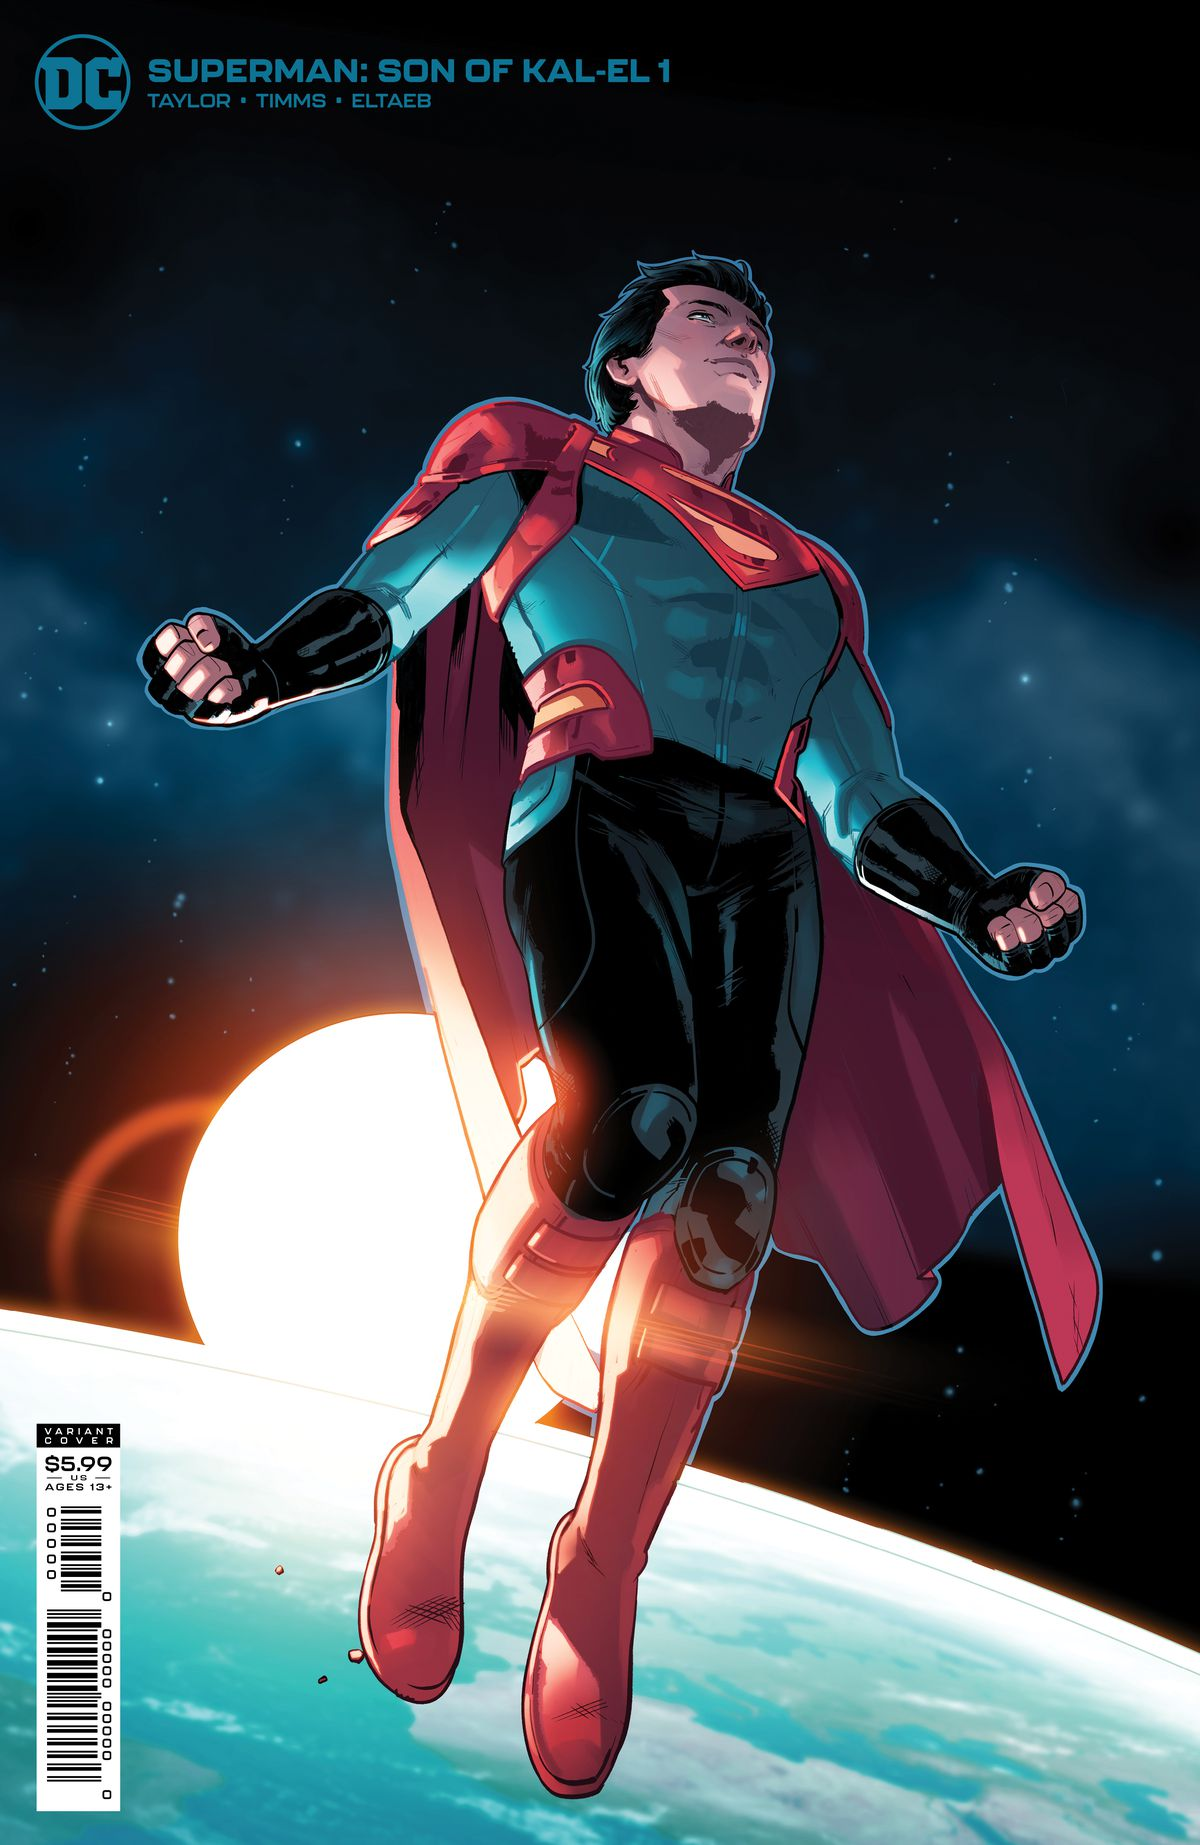 Jon Kent, Superboy/Superman hovers in space as the sun rises above the horizon of the earth behind him on the cover of Superman: Son of Kal-El #1, DC Comics (2021).